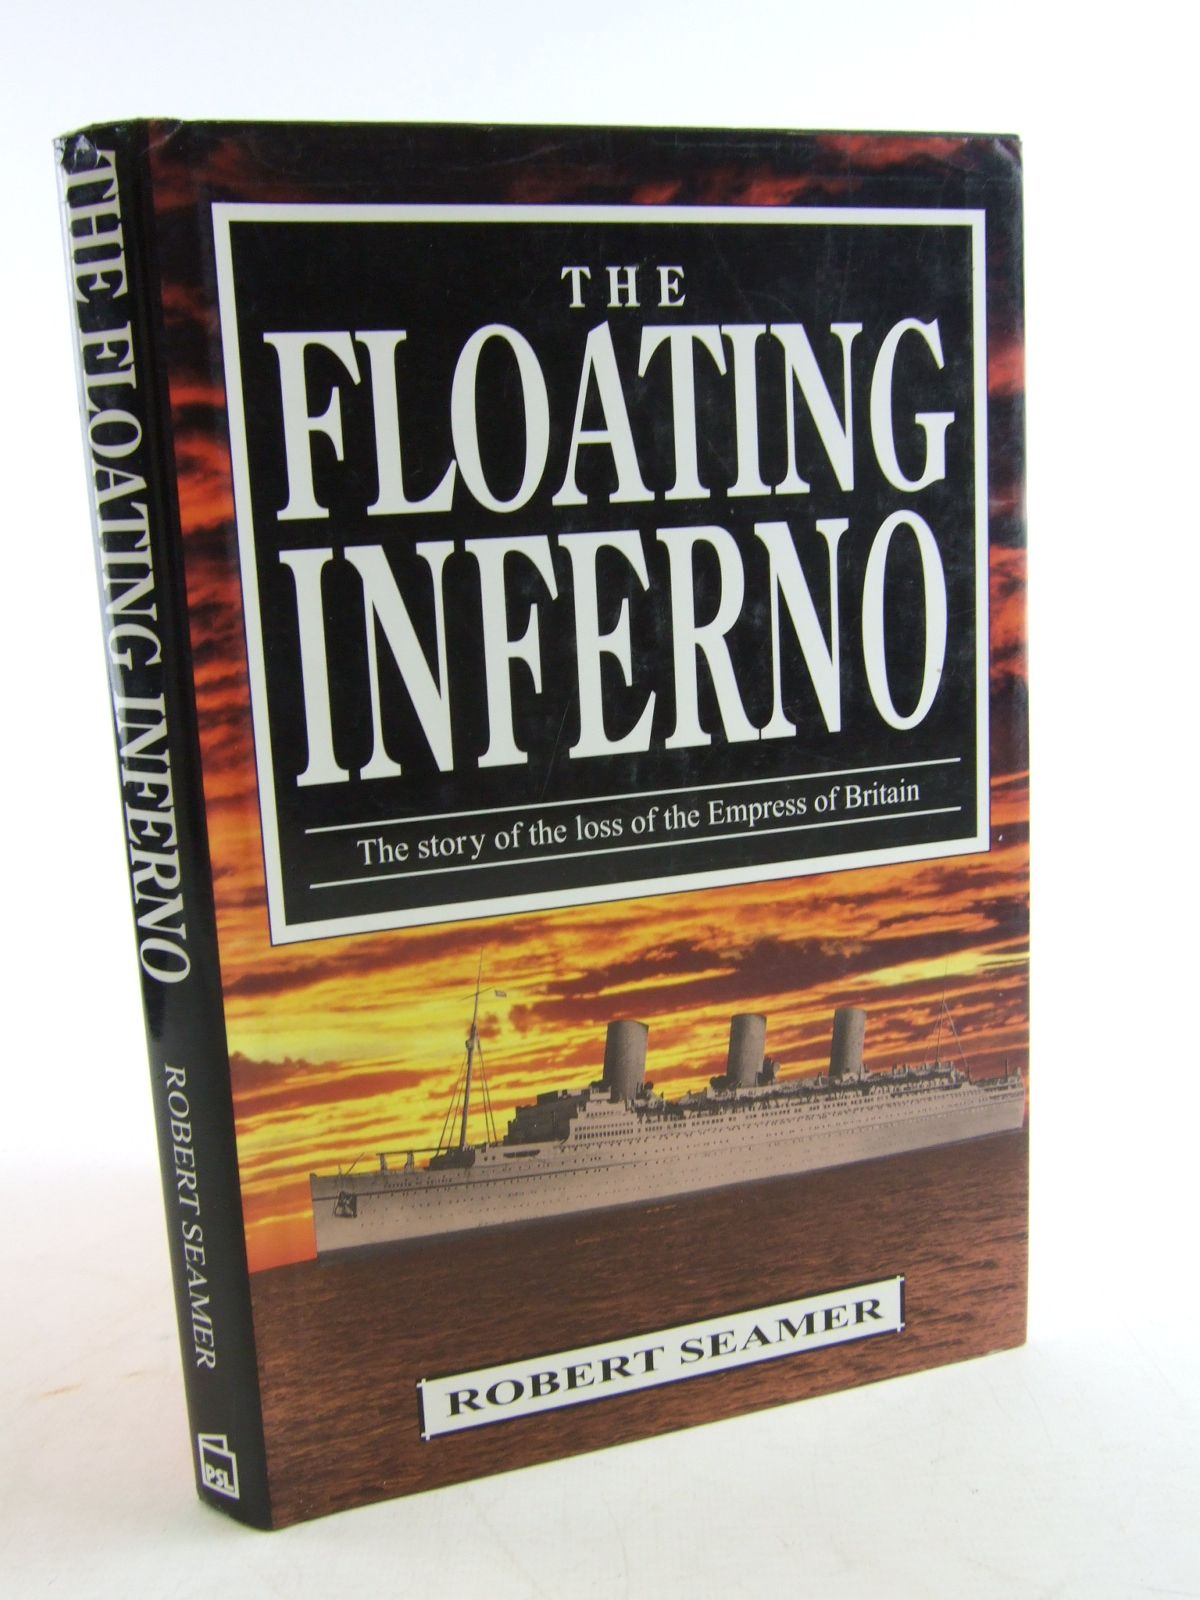 Photo of THE FLOATING INFERNO written by Seamer, Robert published by Patrick Stephens Limited (STOCK CODE: 1806016)  for sale by Stella & Rose's Books